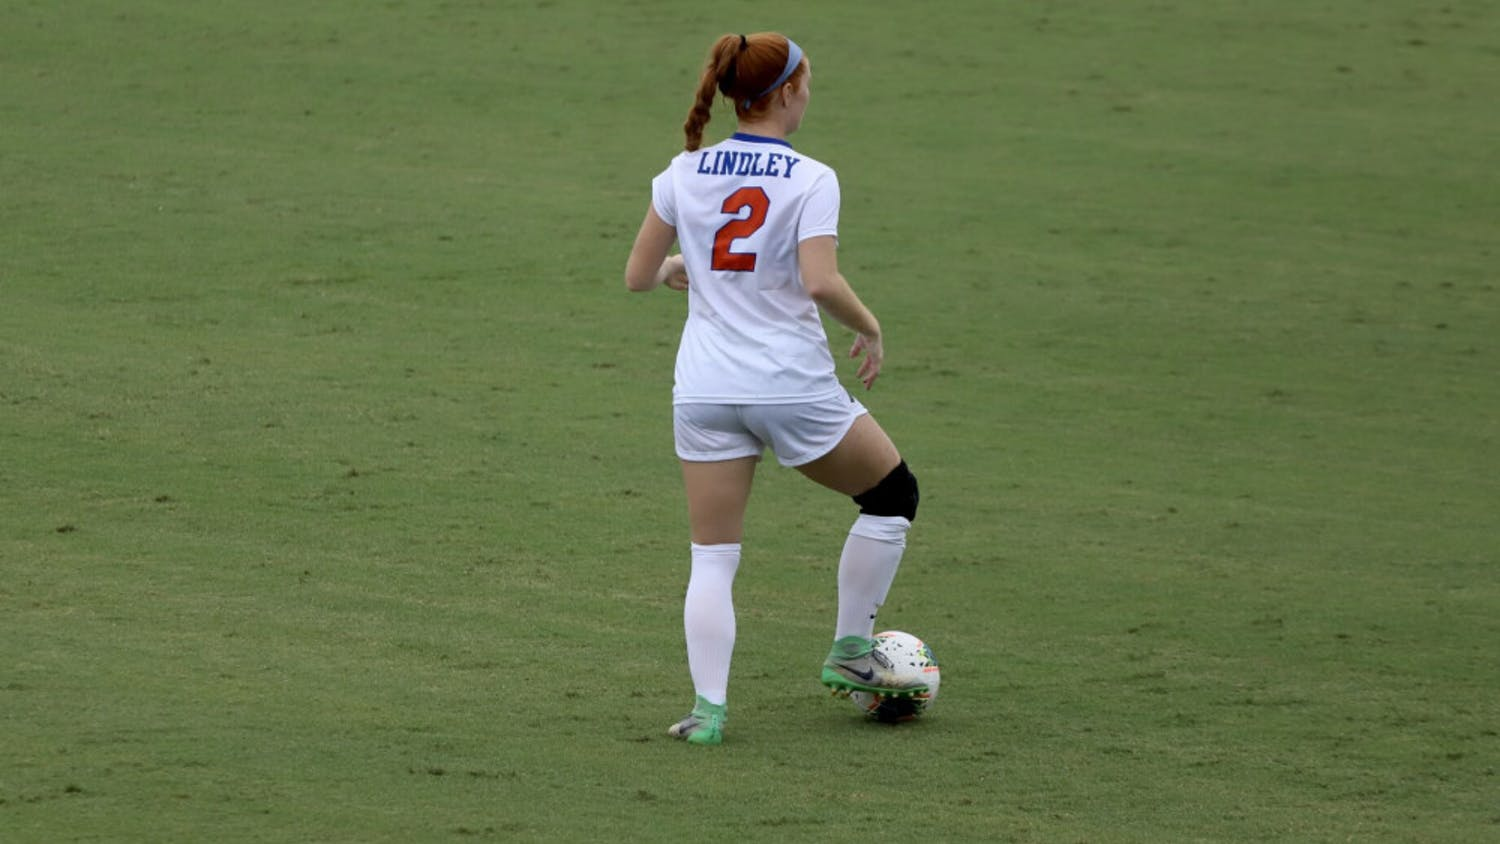 Junior Cassidy Lindley at the Gators home opener of the 2020 season. Florida takes on Miami Sunday in search of its first victory in 2021.